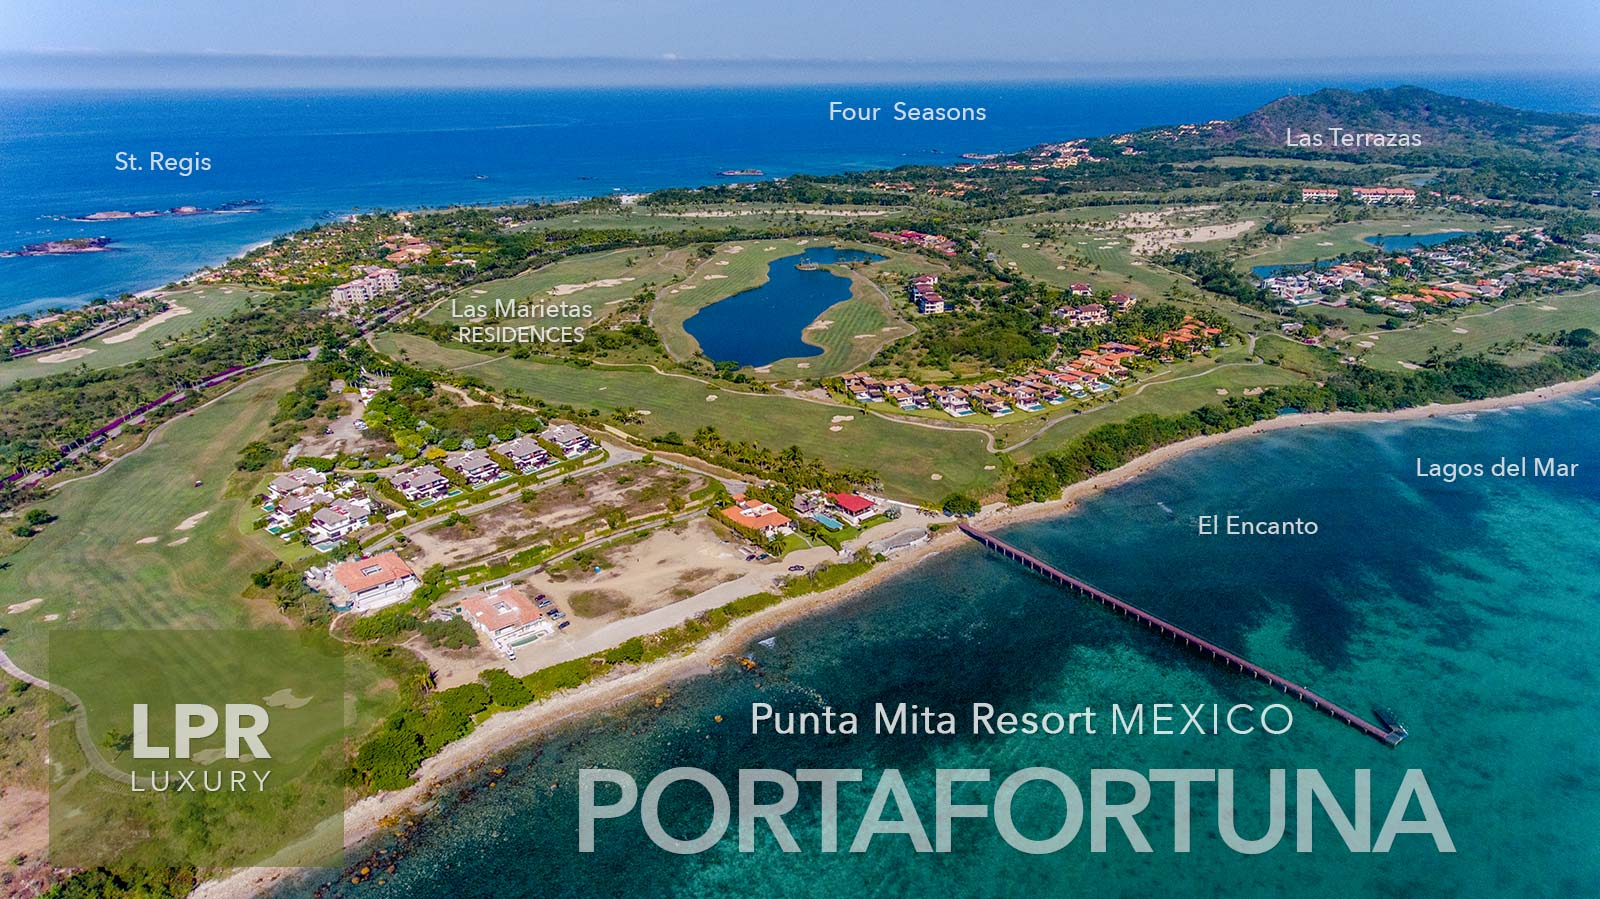 Porta Fortuna - Luxury Resort Real Estate at the Punta Mita Resort, Riviera Nayarit, Mexico